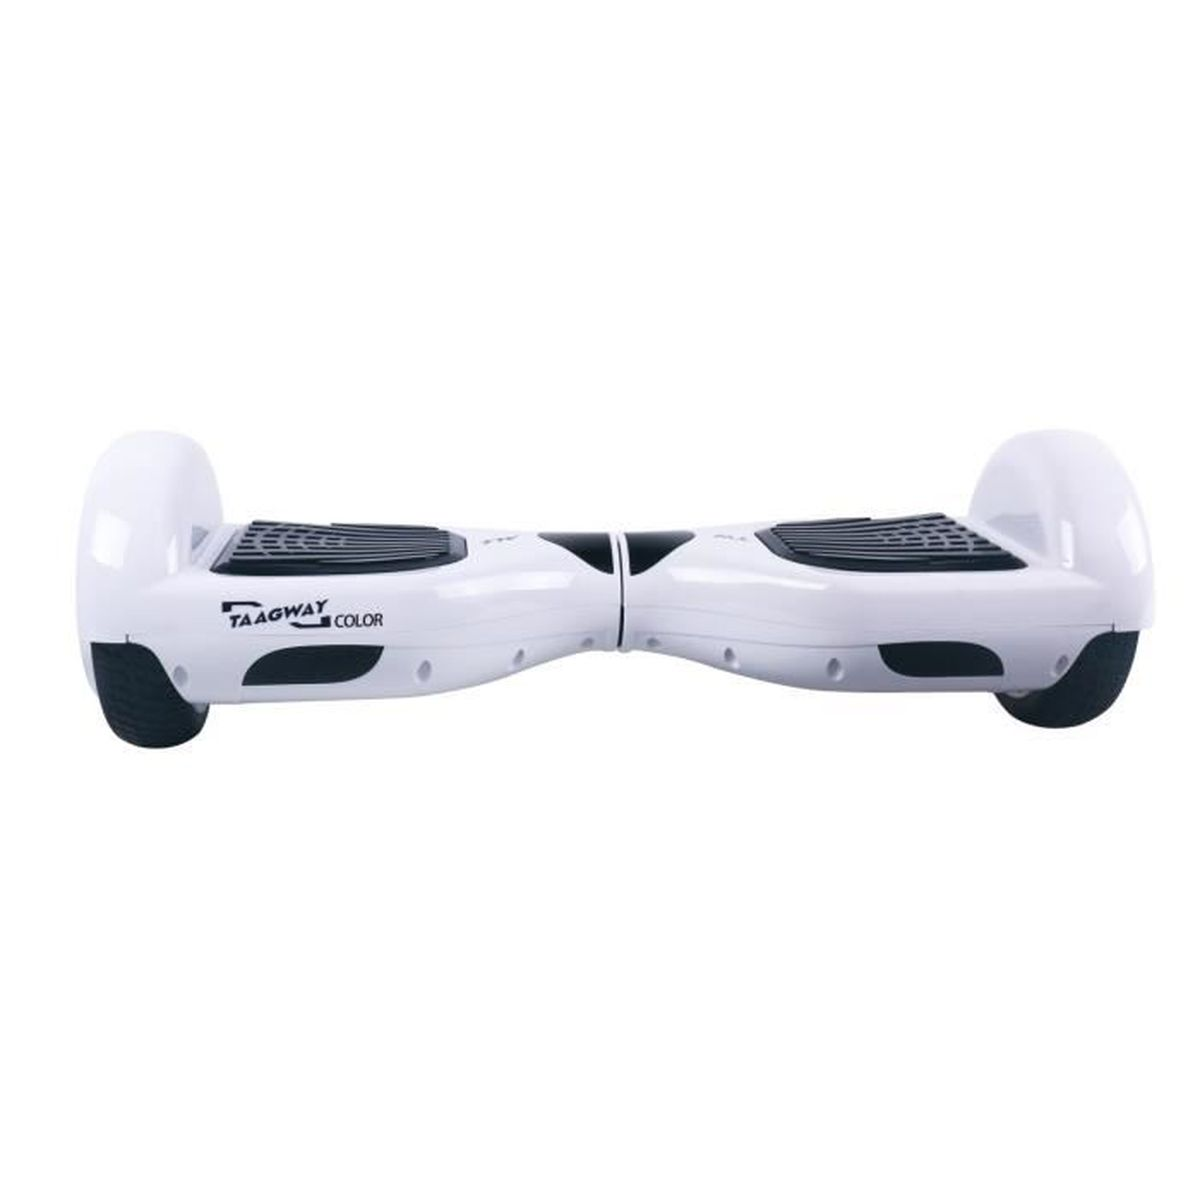 """HOVERBOARD TAAGWAY Hoverboard électrique Color 6,5"""" Blanc - G"""